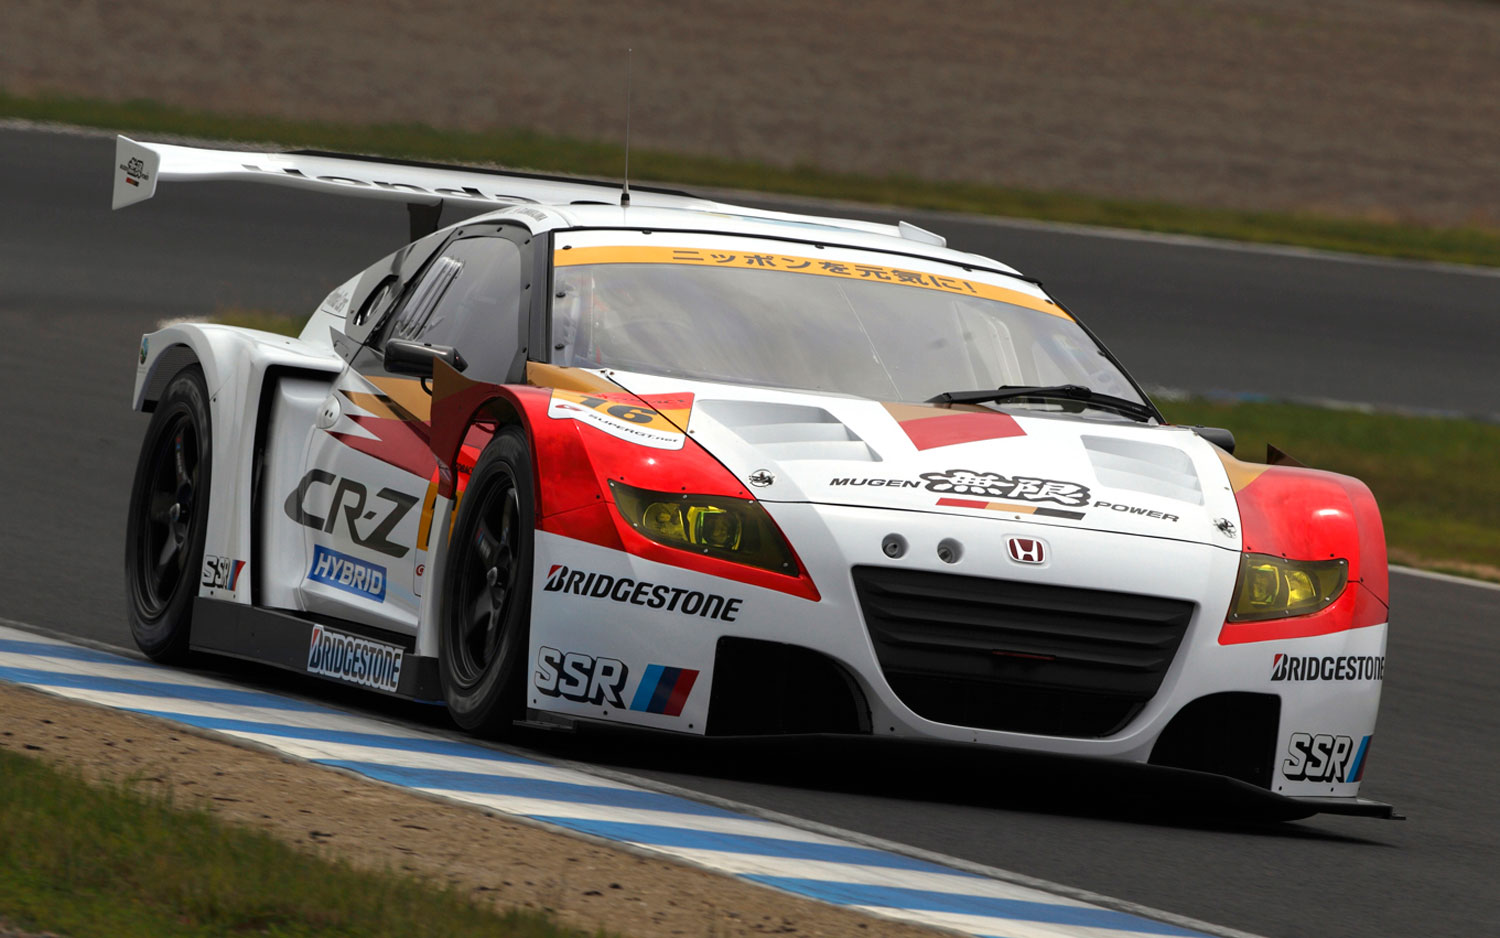 2012 Honda CR Z GT SuperGT Racer Front View1